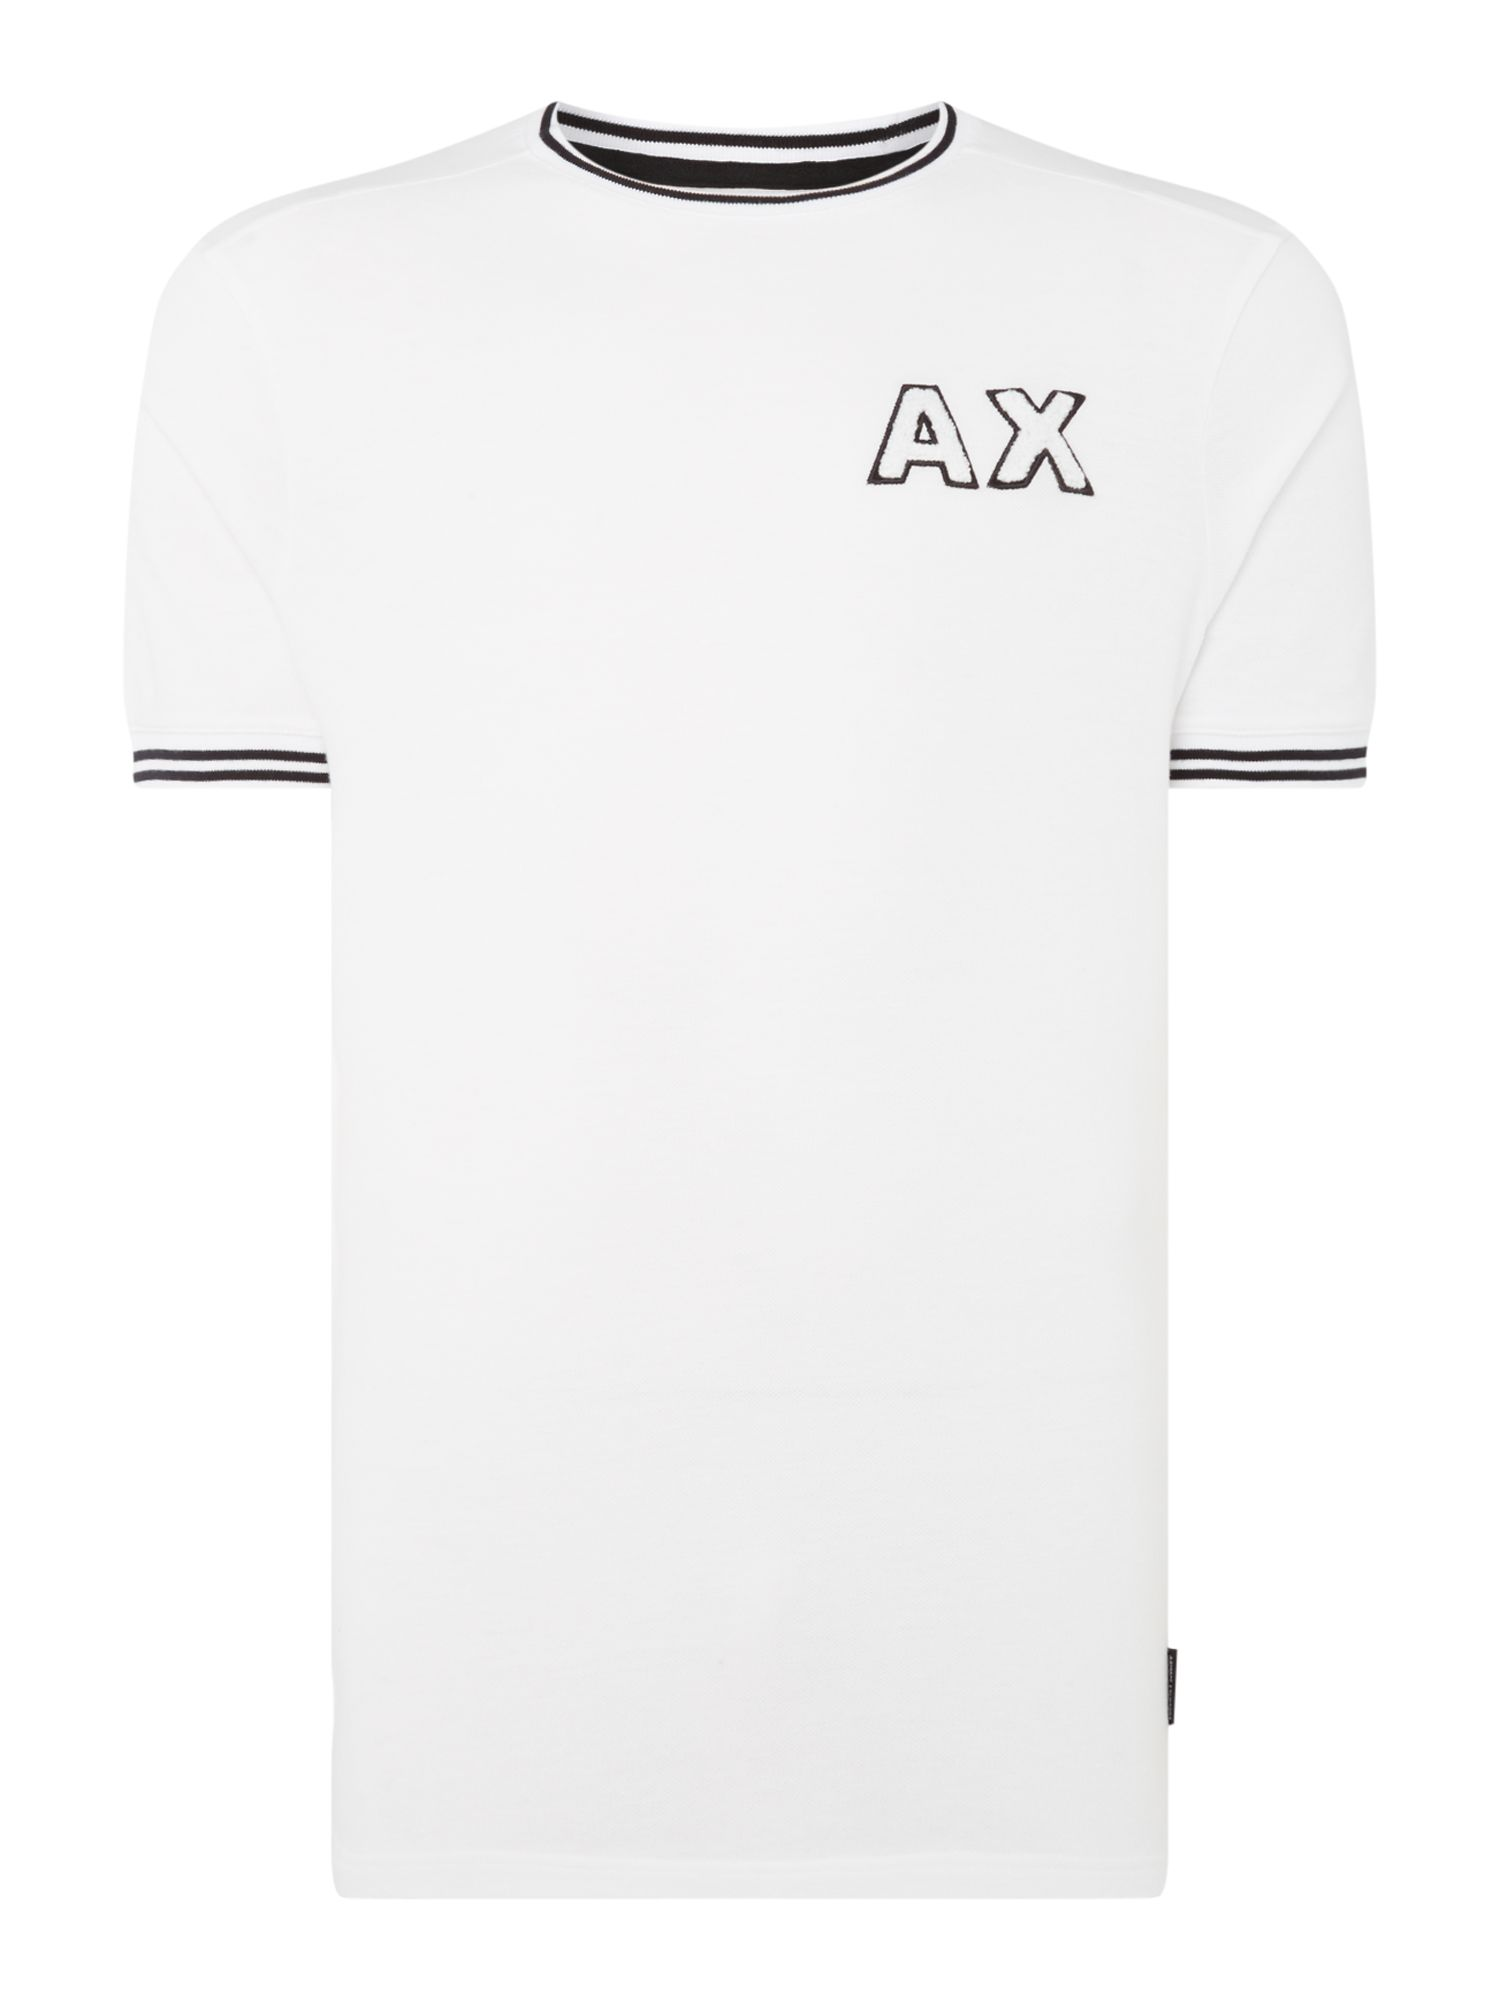 Men's Armani Exchange AX Textured Logo Tshirt, White